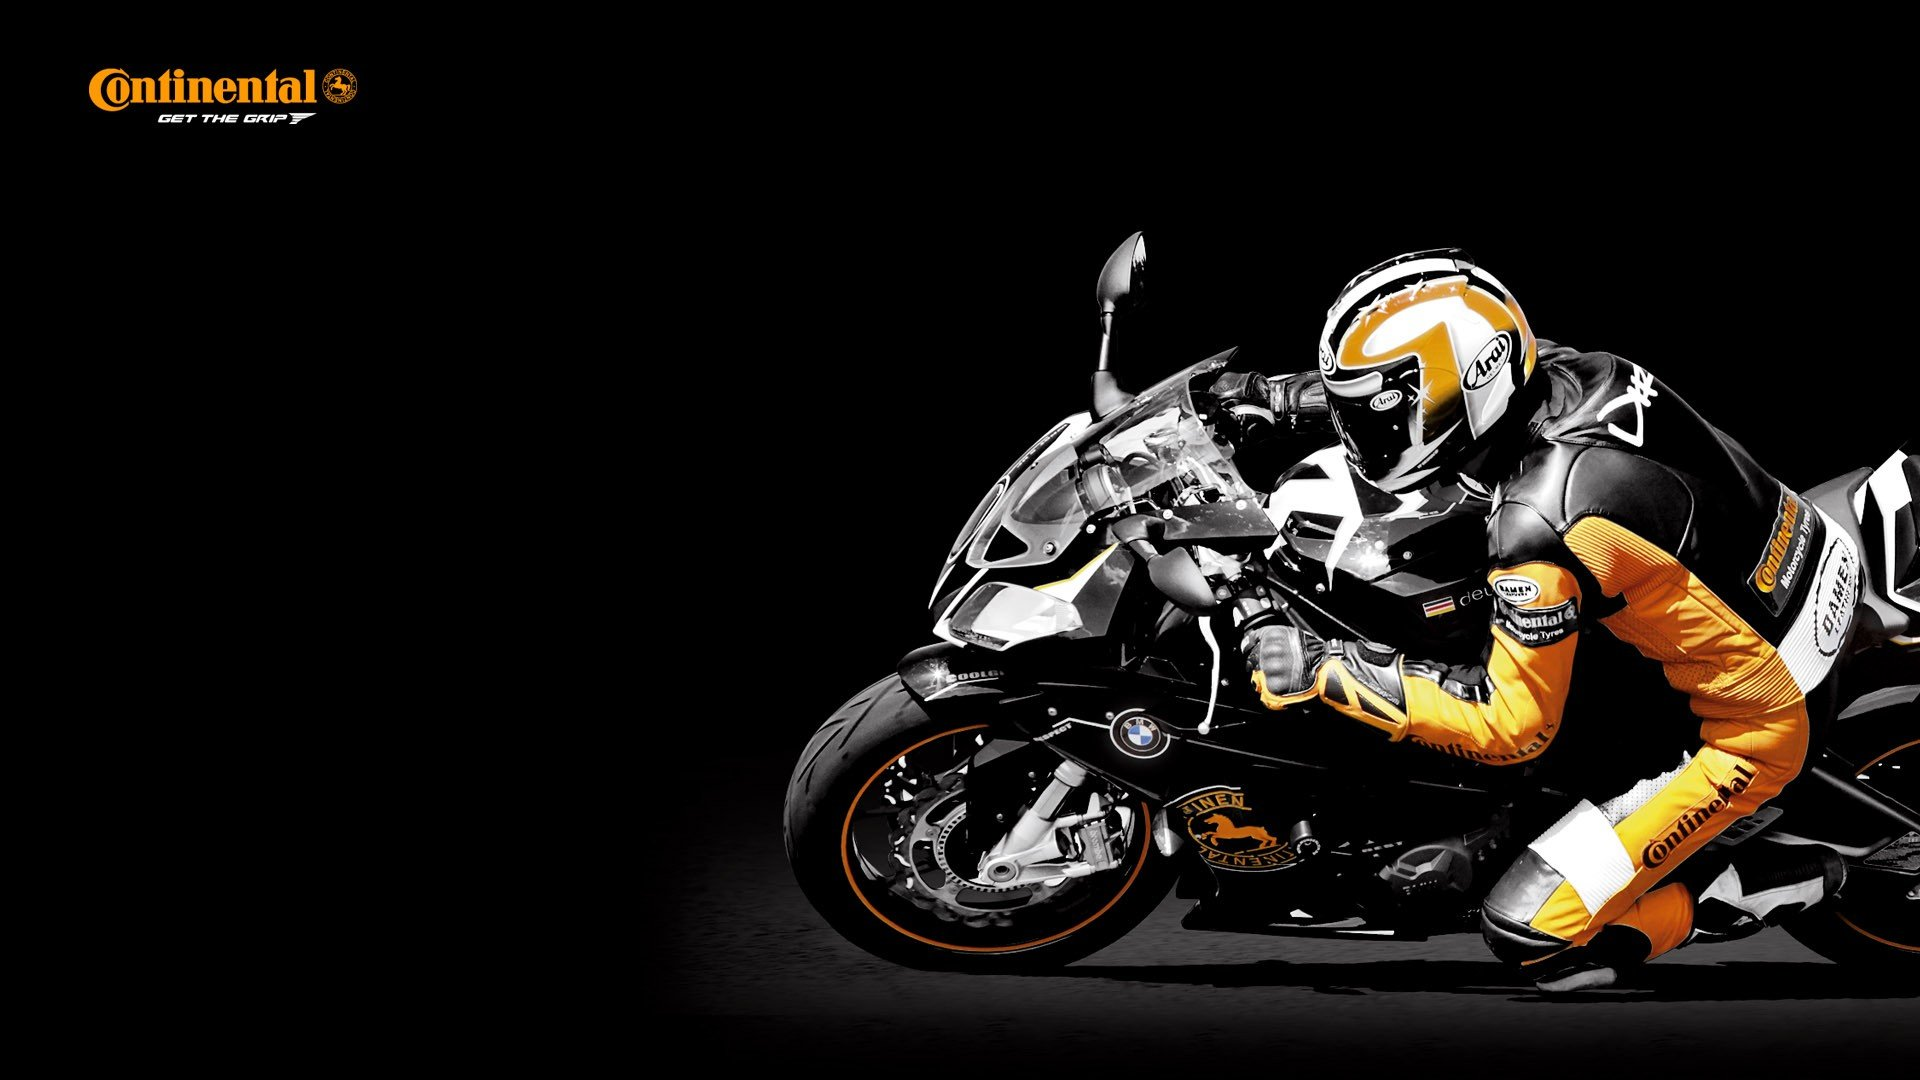 Motorbike Wallpaper HD - WallpaperSafari